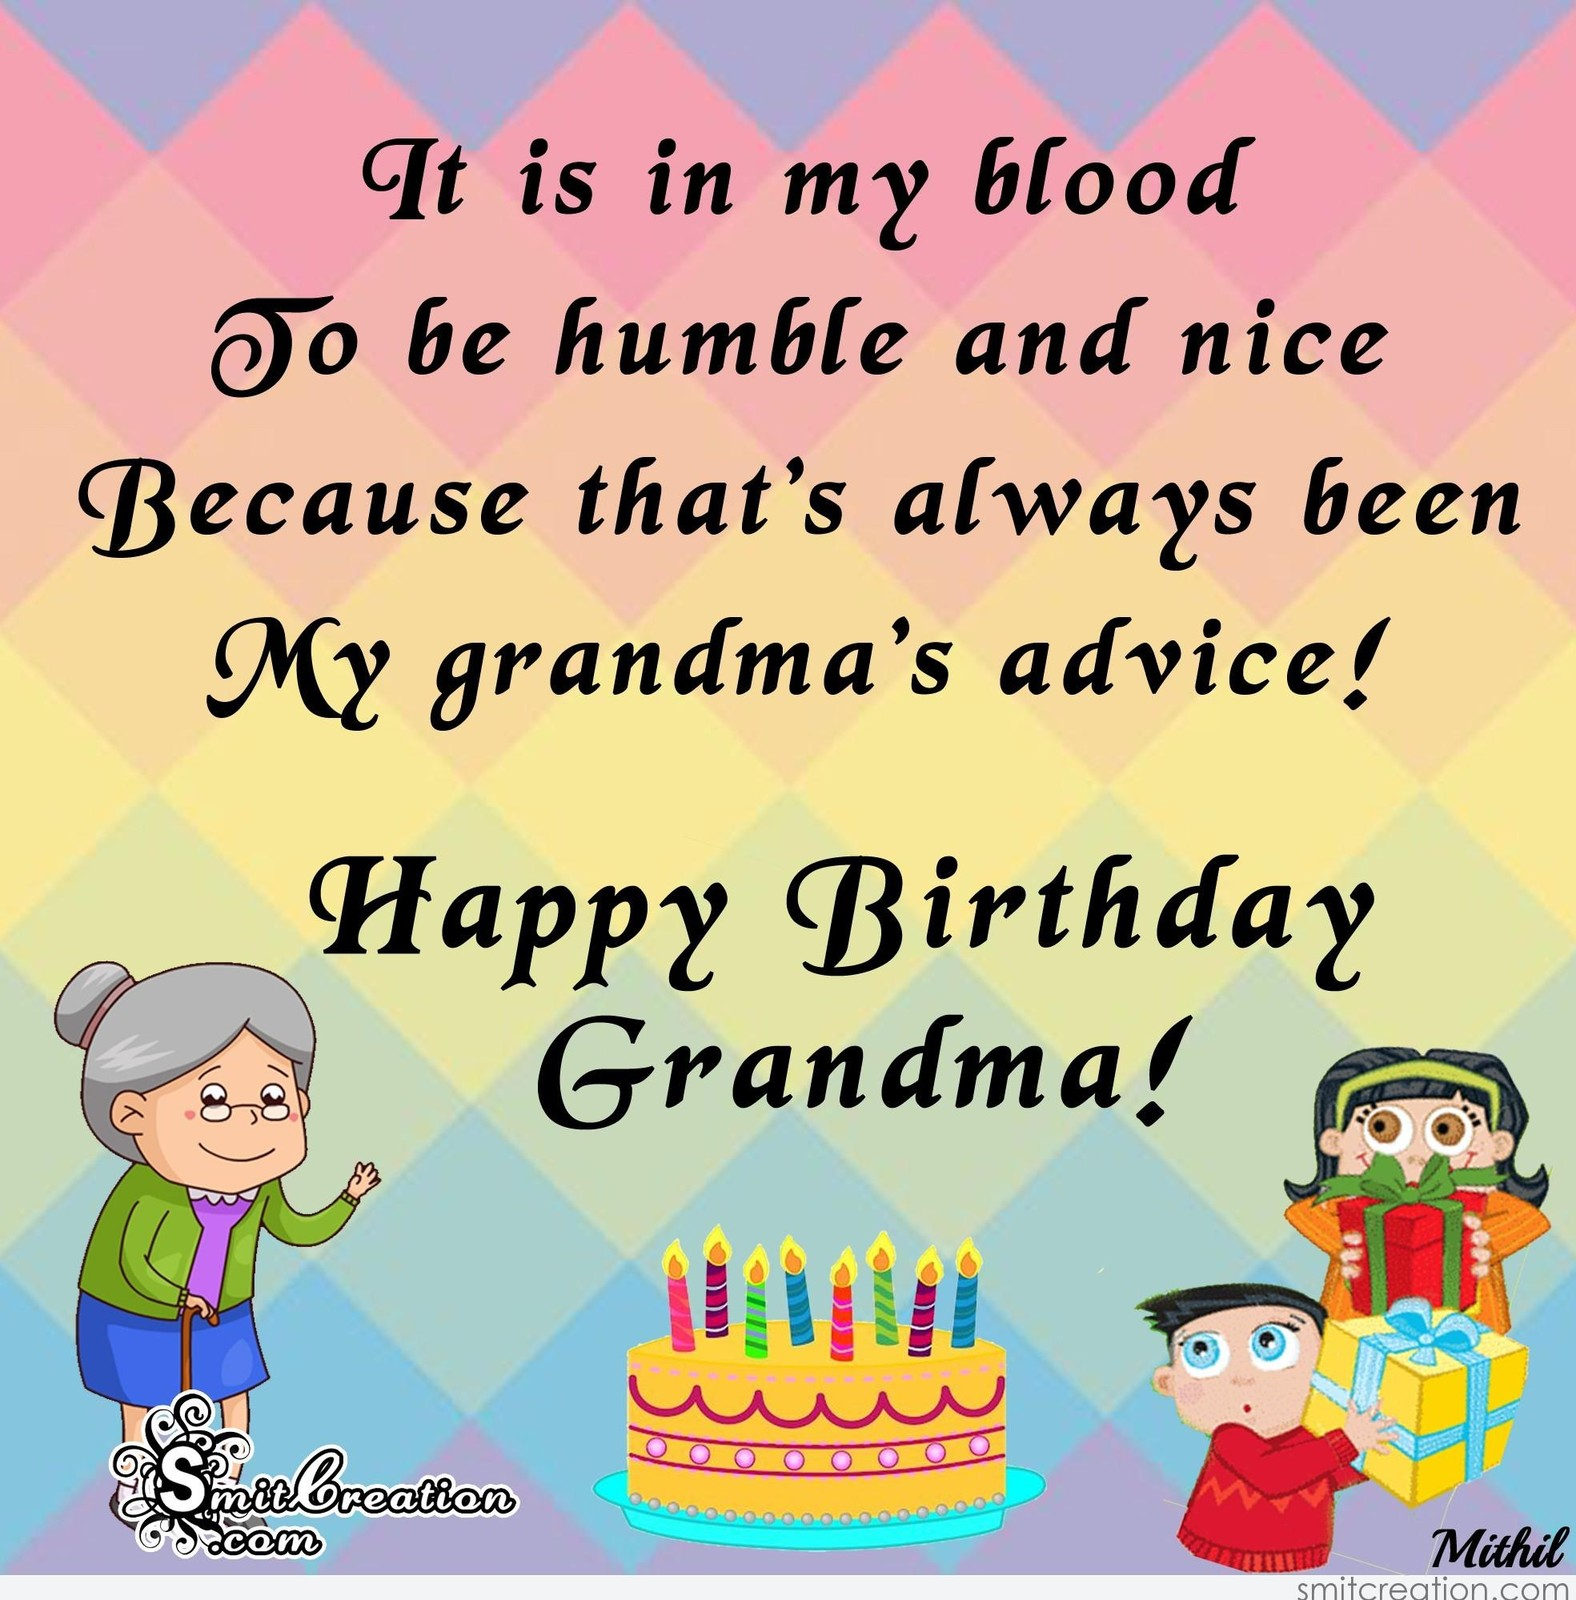 Happy Birthday Images For Grandmother Free Beautiful Bday Cards And Pictures Bday Card Com